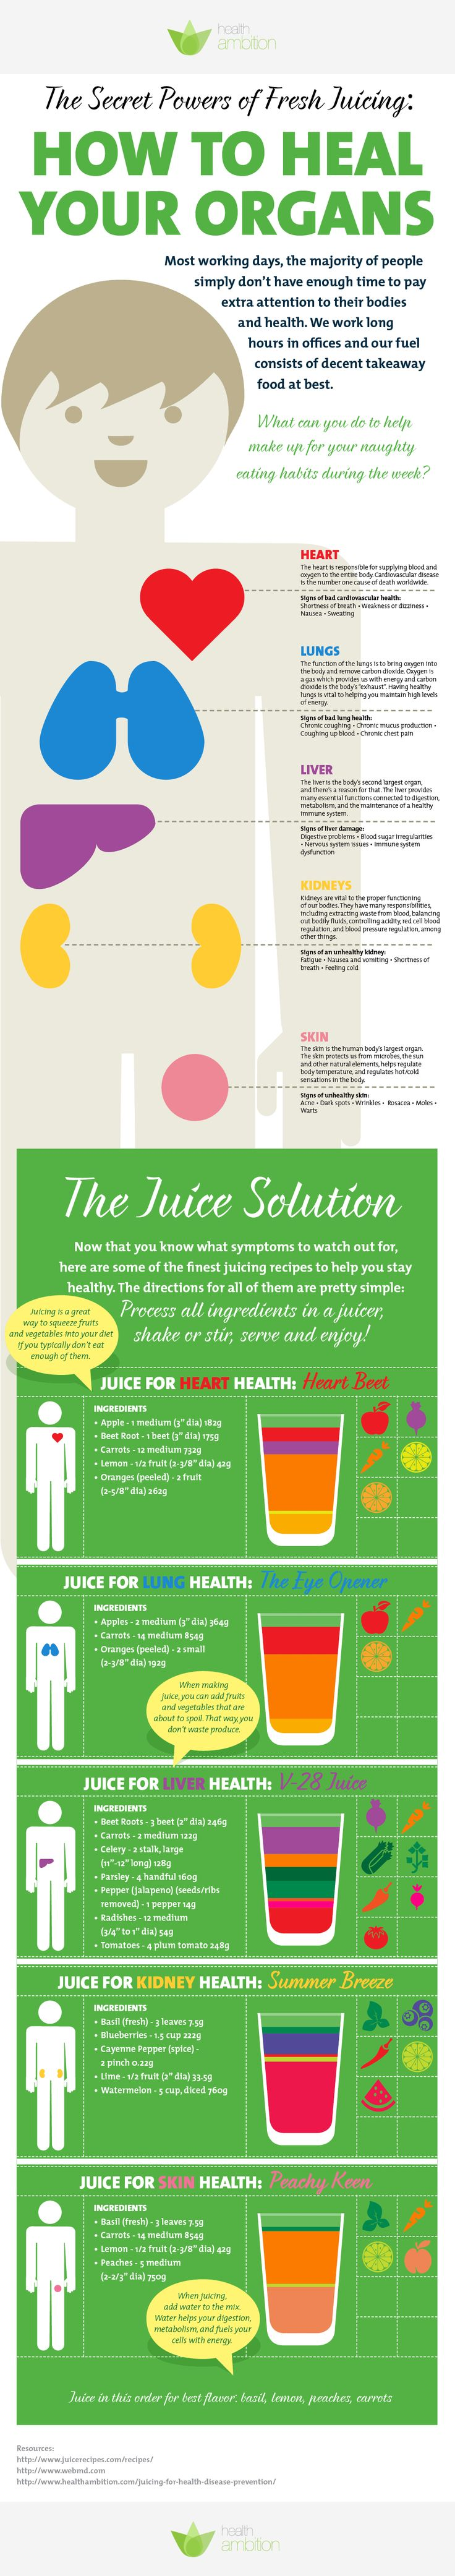 The best juicing recipes for your organs!